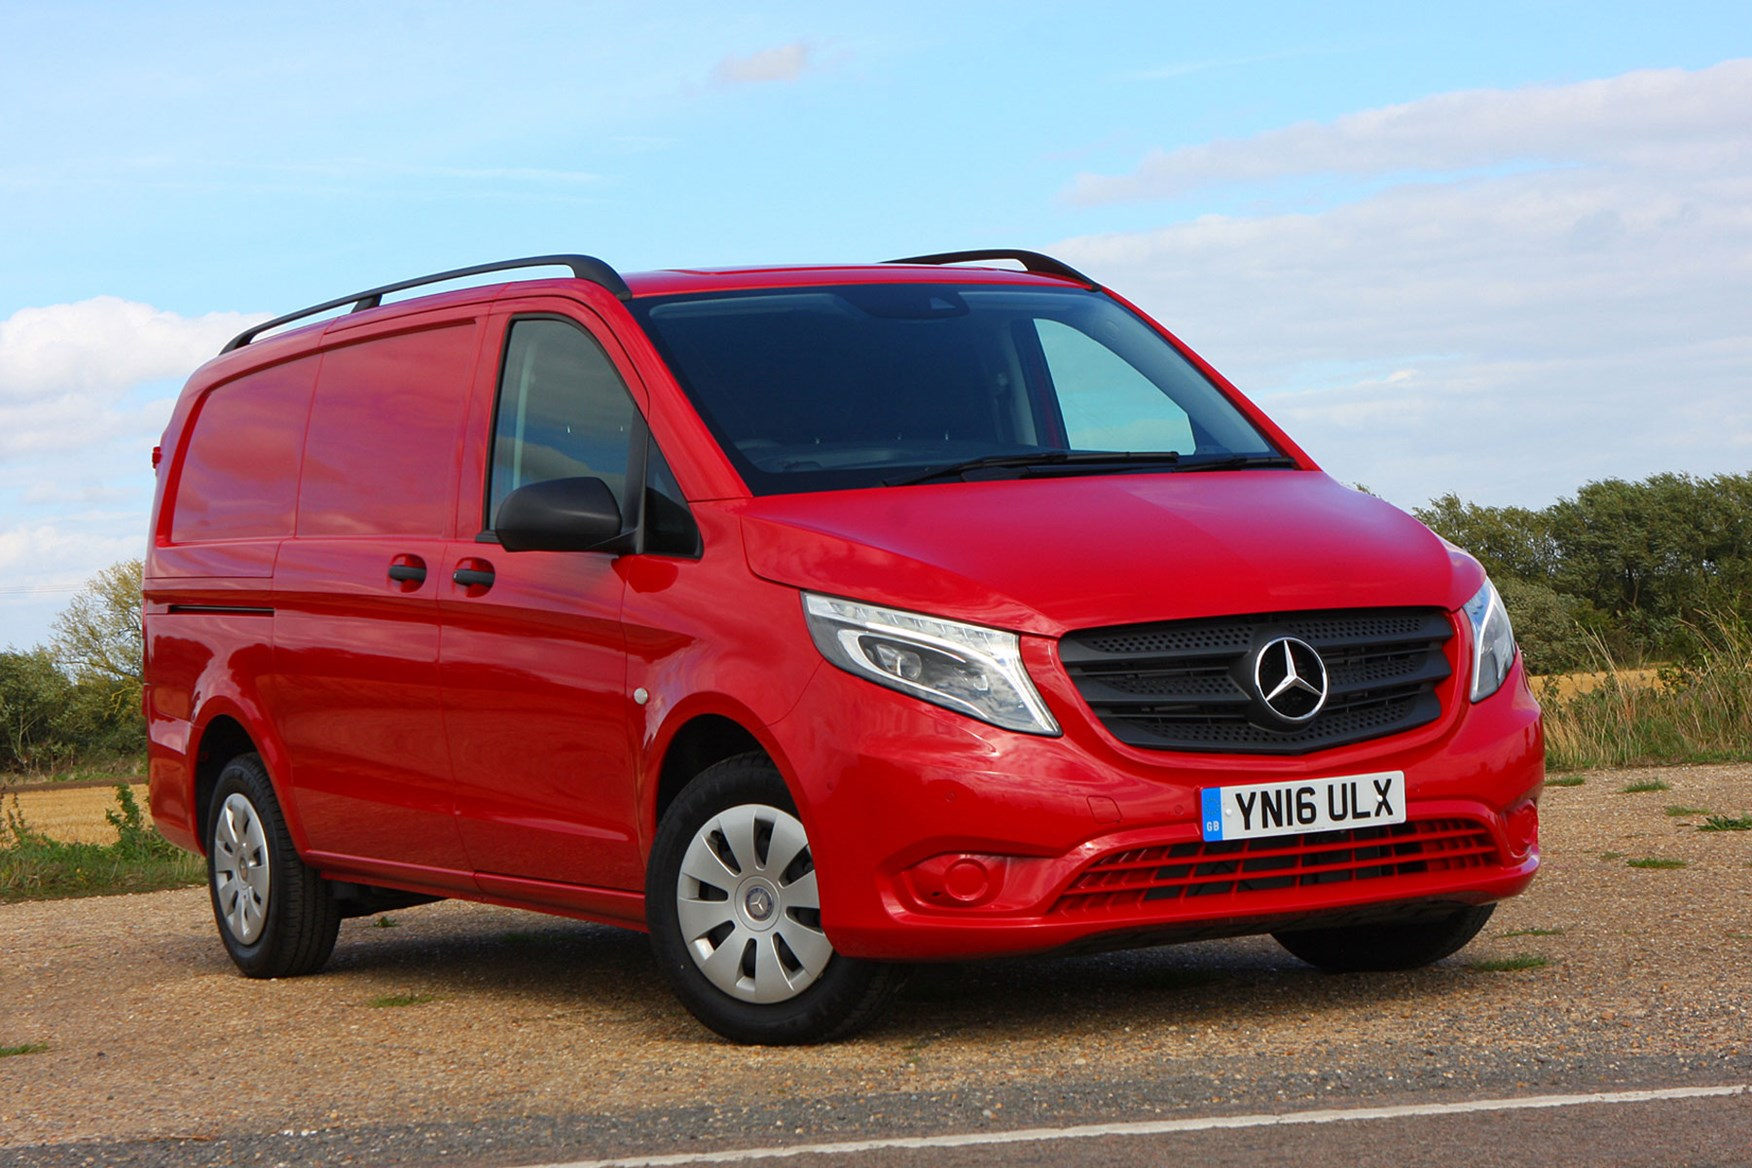 Mercedes-Benz Vito 111CDi Long review - front view, red